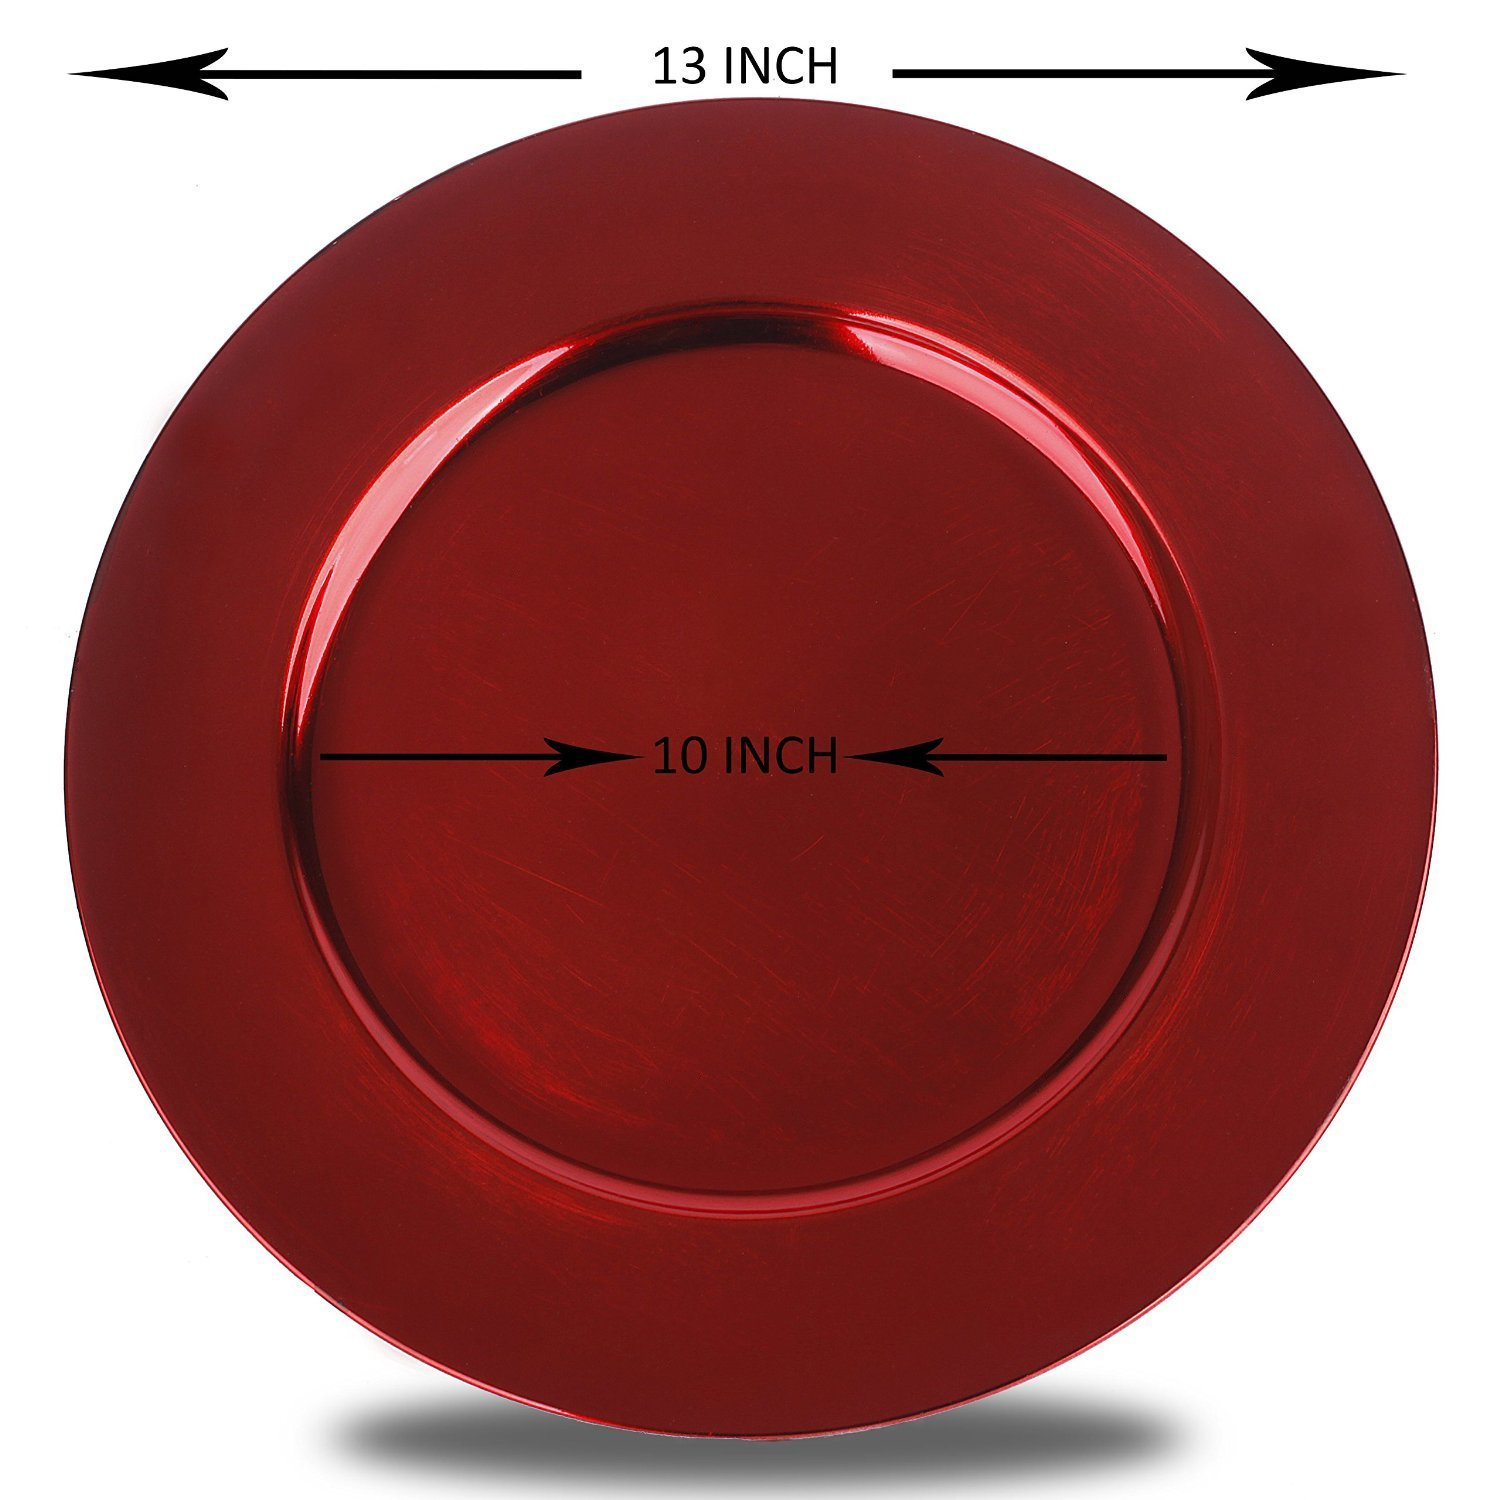 Luxurious Round Charger Dinner Plates, Burgundy, Red 13 inch, Set of 1,2,4,6, or 12 (1) - Up Your Dinner Game (12)